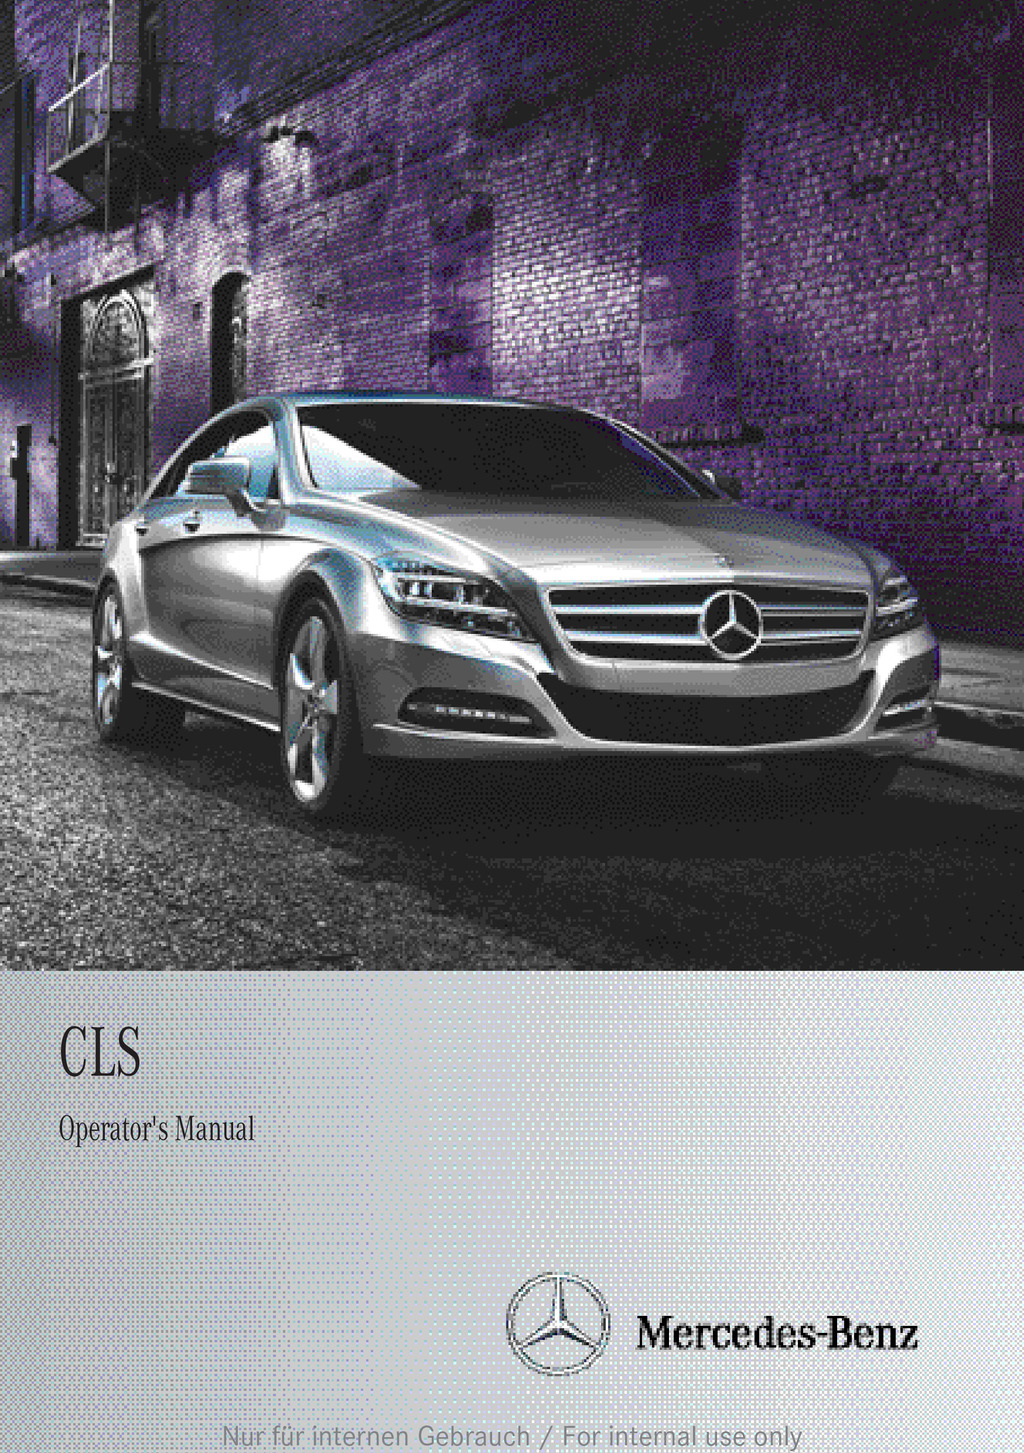 2013 Mercedes-Benz C Class owners manual